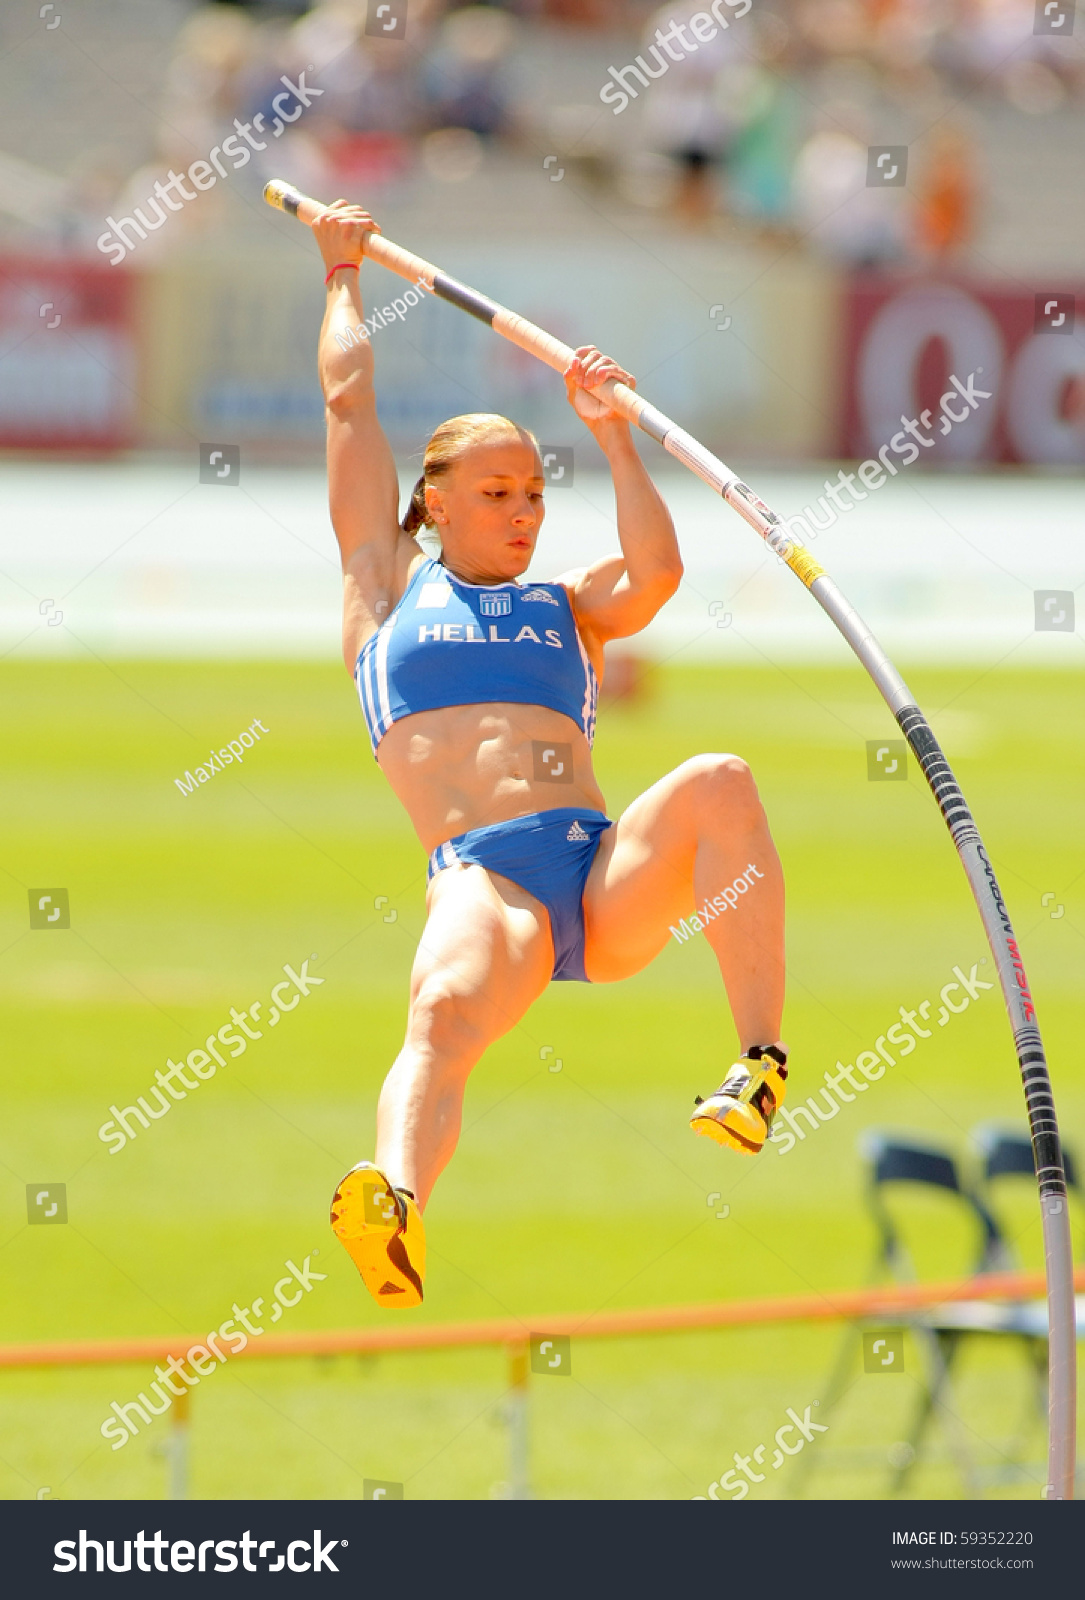 Barcelona spain july 28 nikoleta kiriakopoulou of greece during women pole vault of the 20th - Forlady barcelona ...